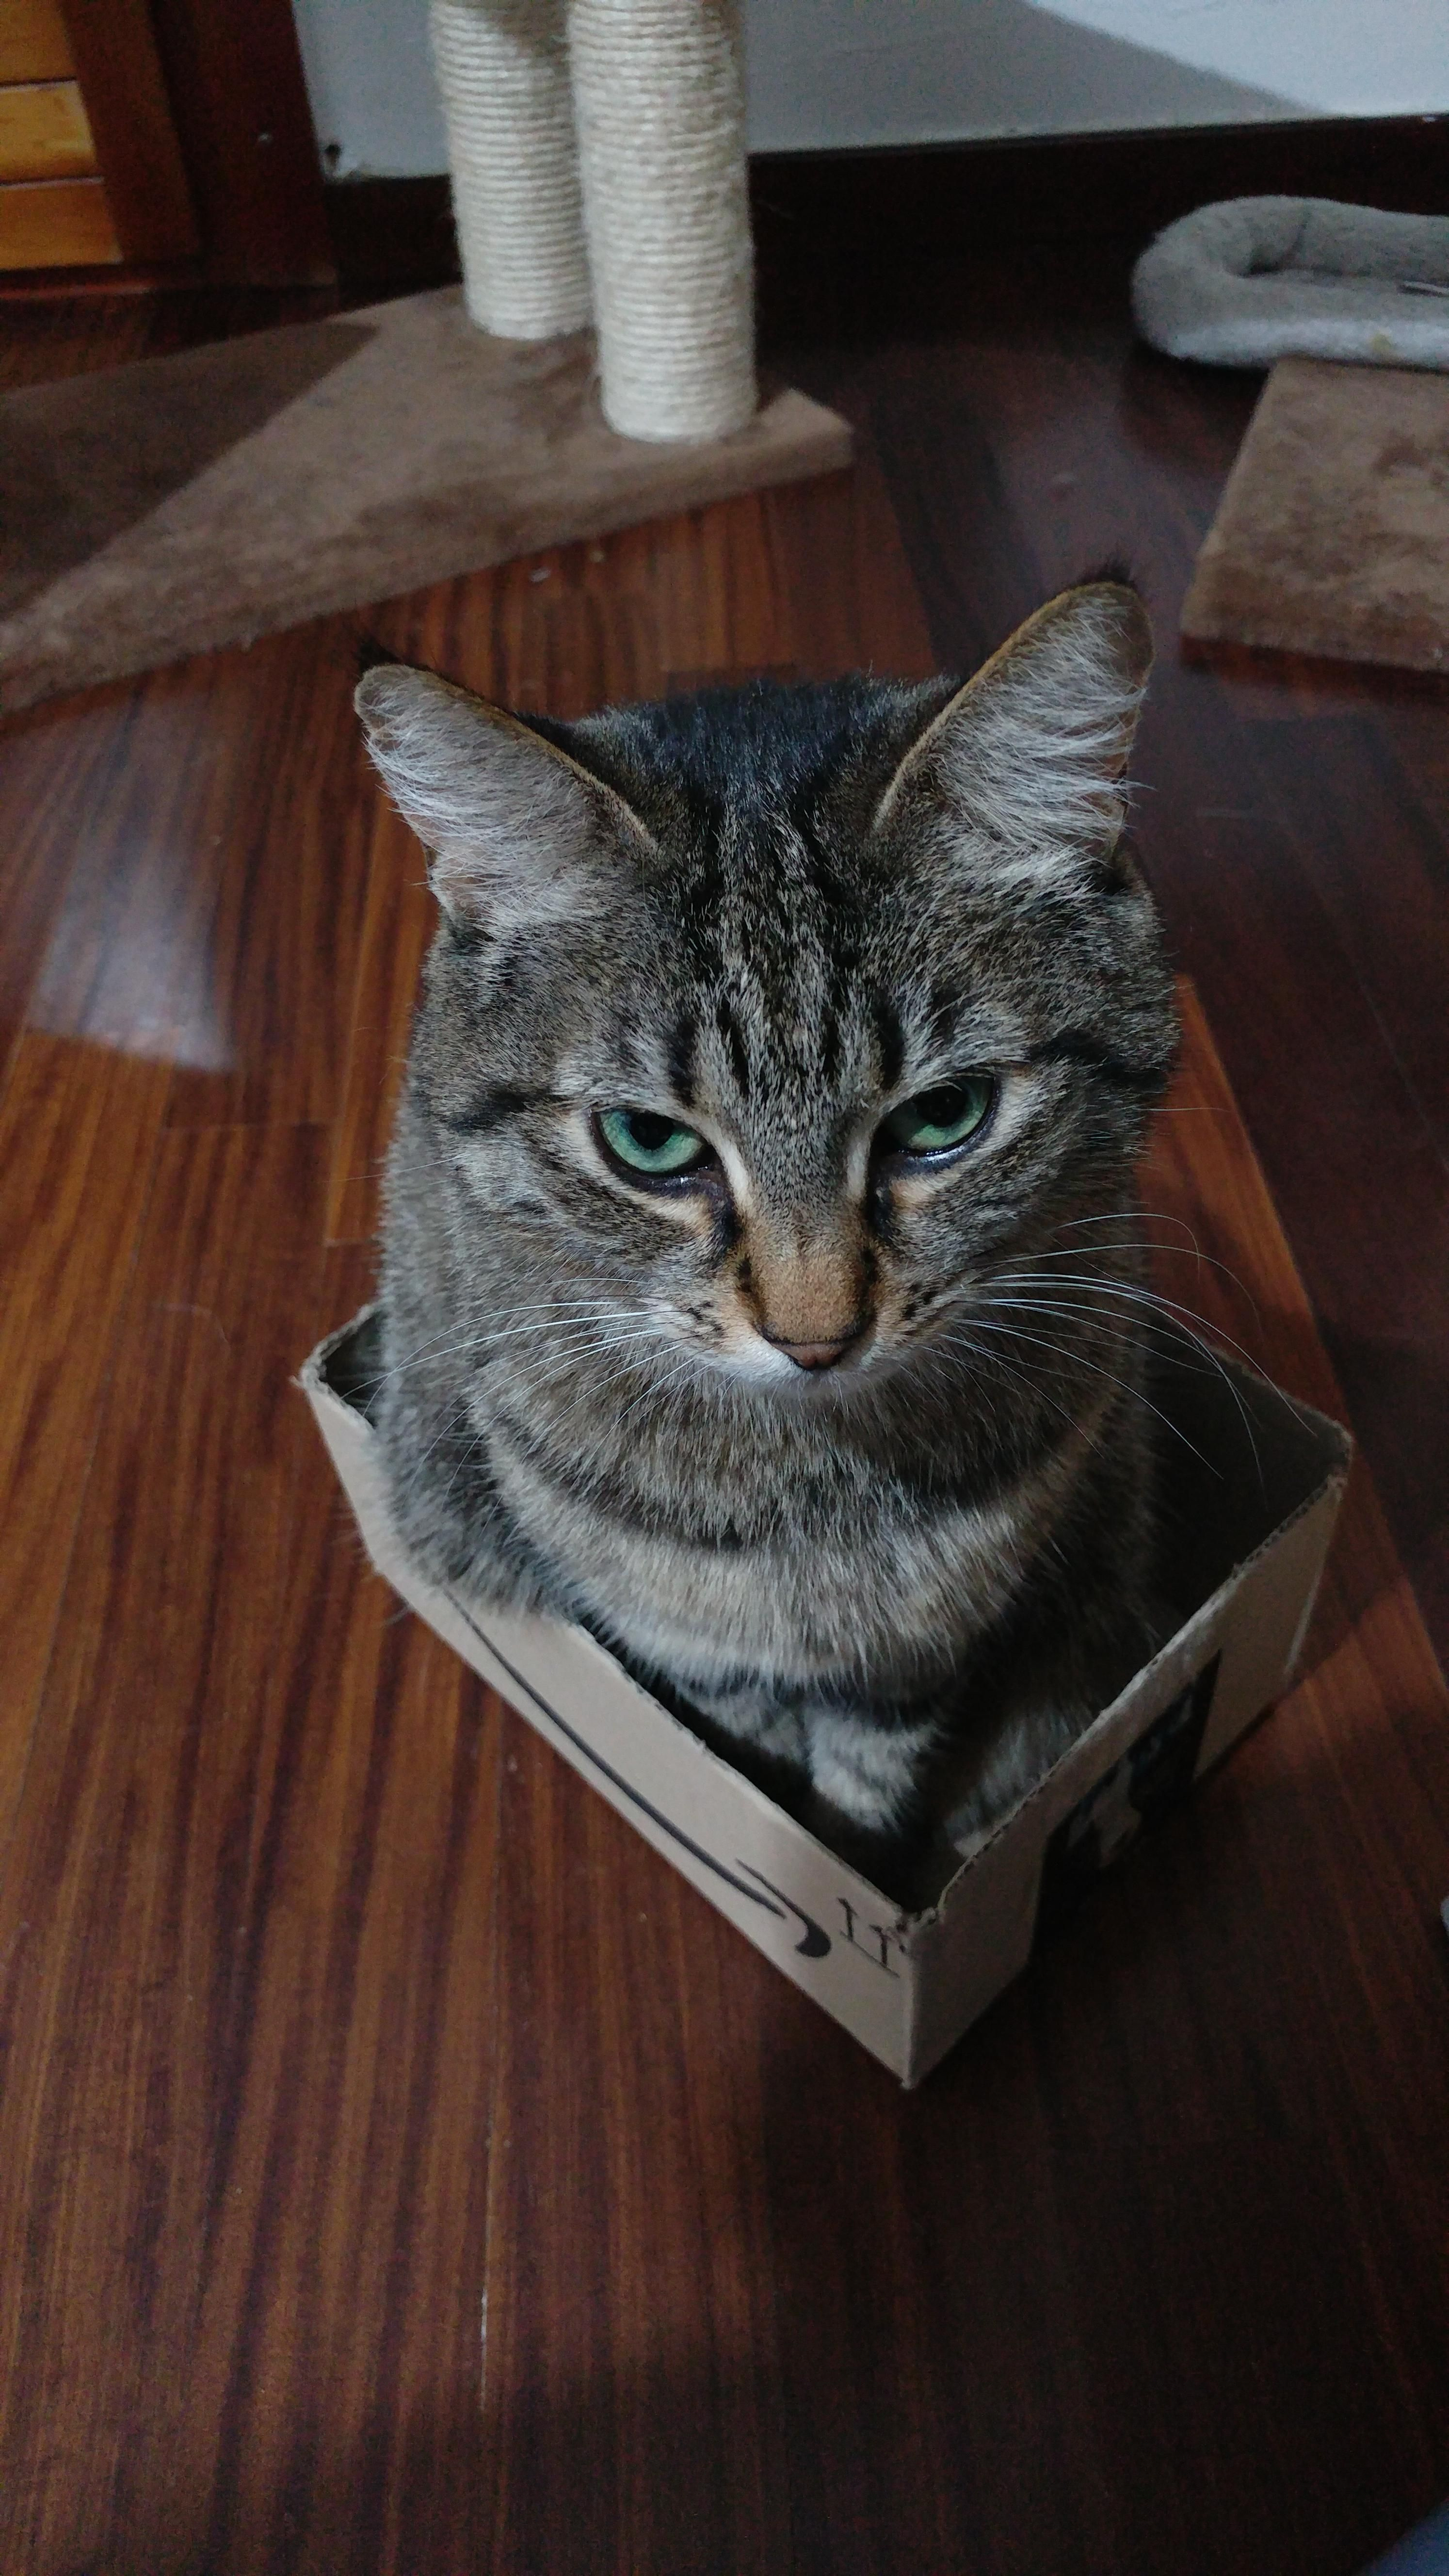 Mika is angry I gave her such a small box Cat pictures